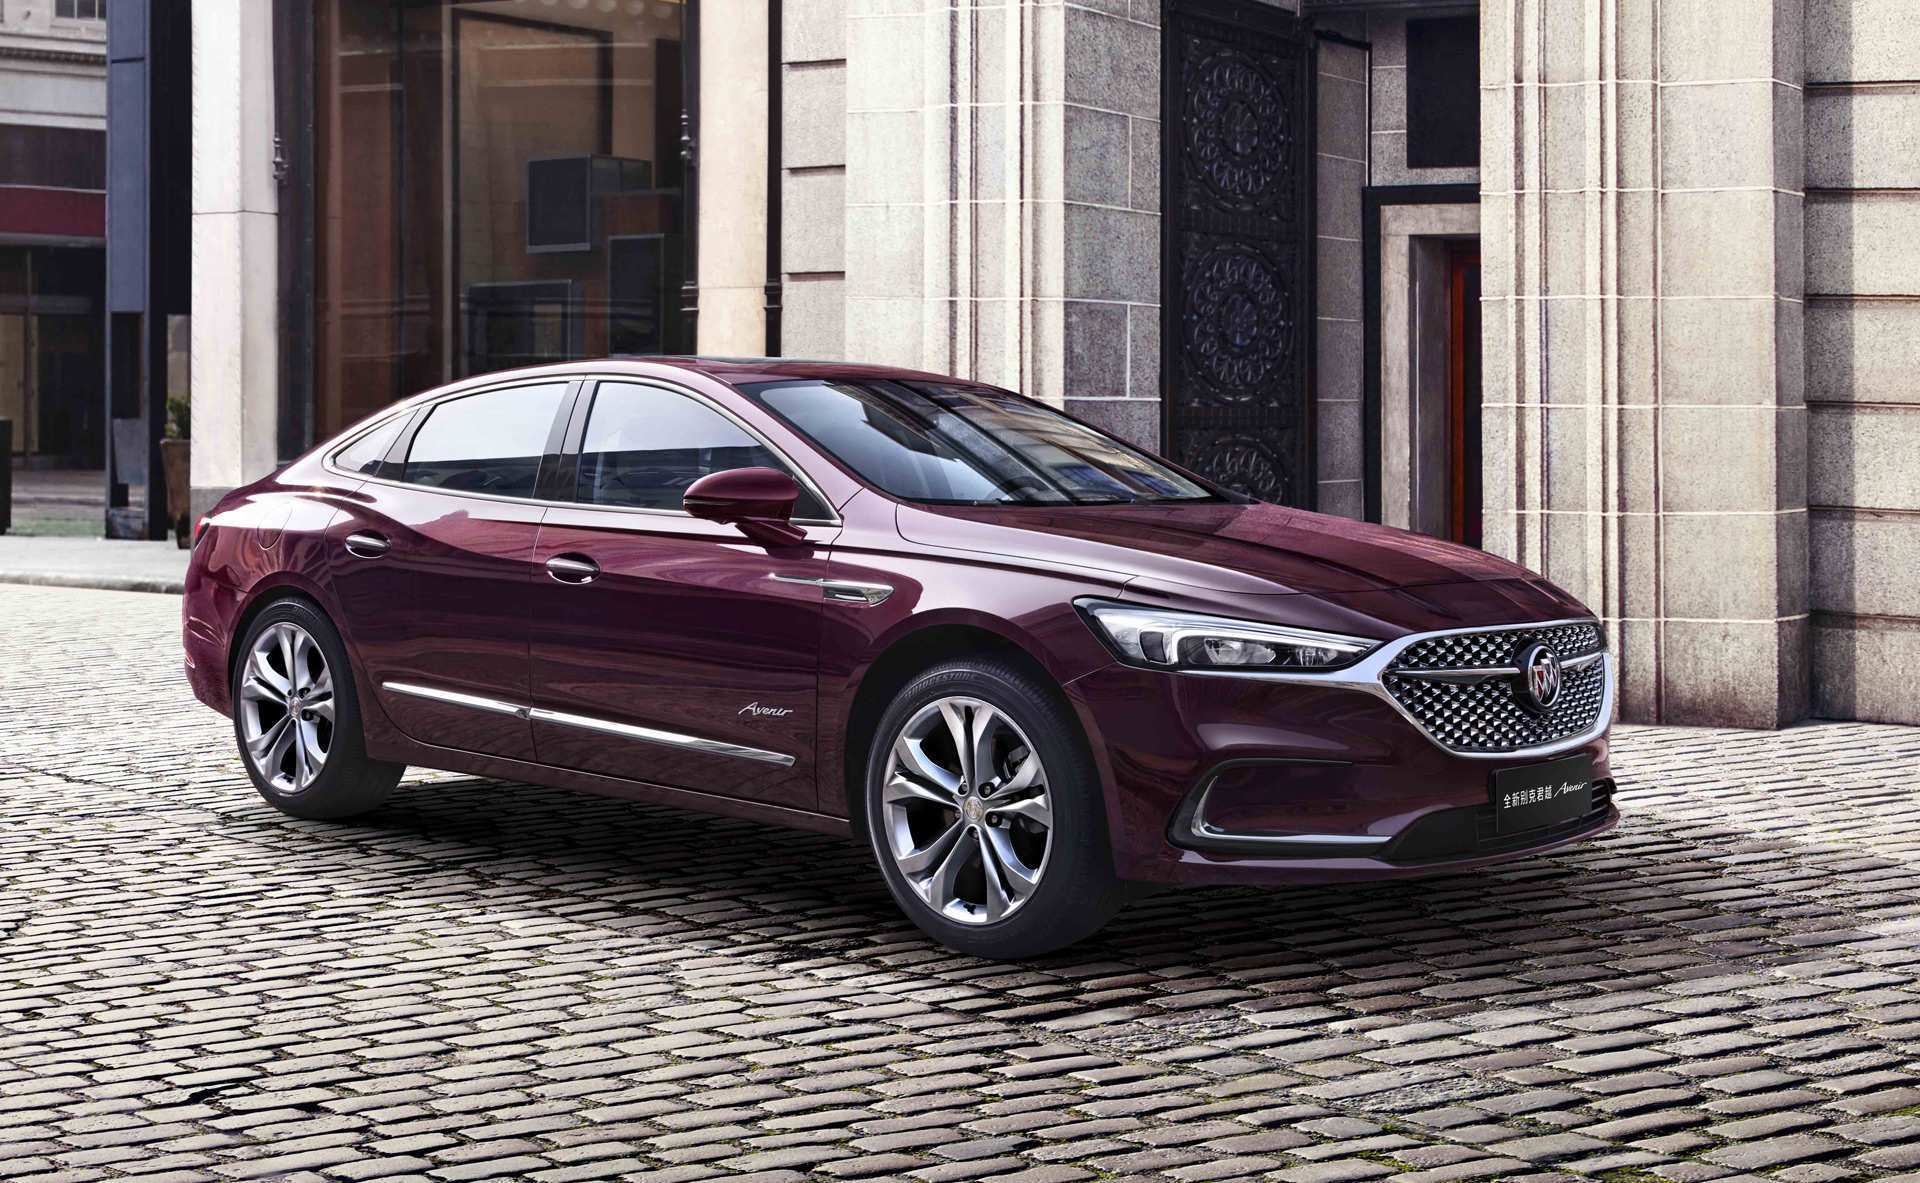 45 All New Buick Sedan 2020 Images